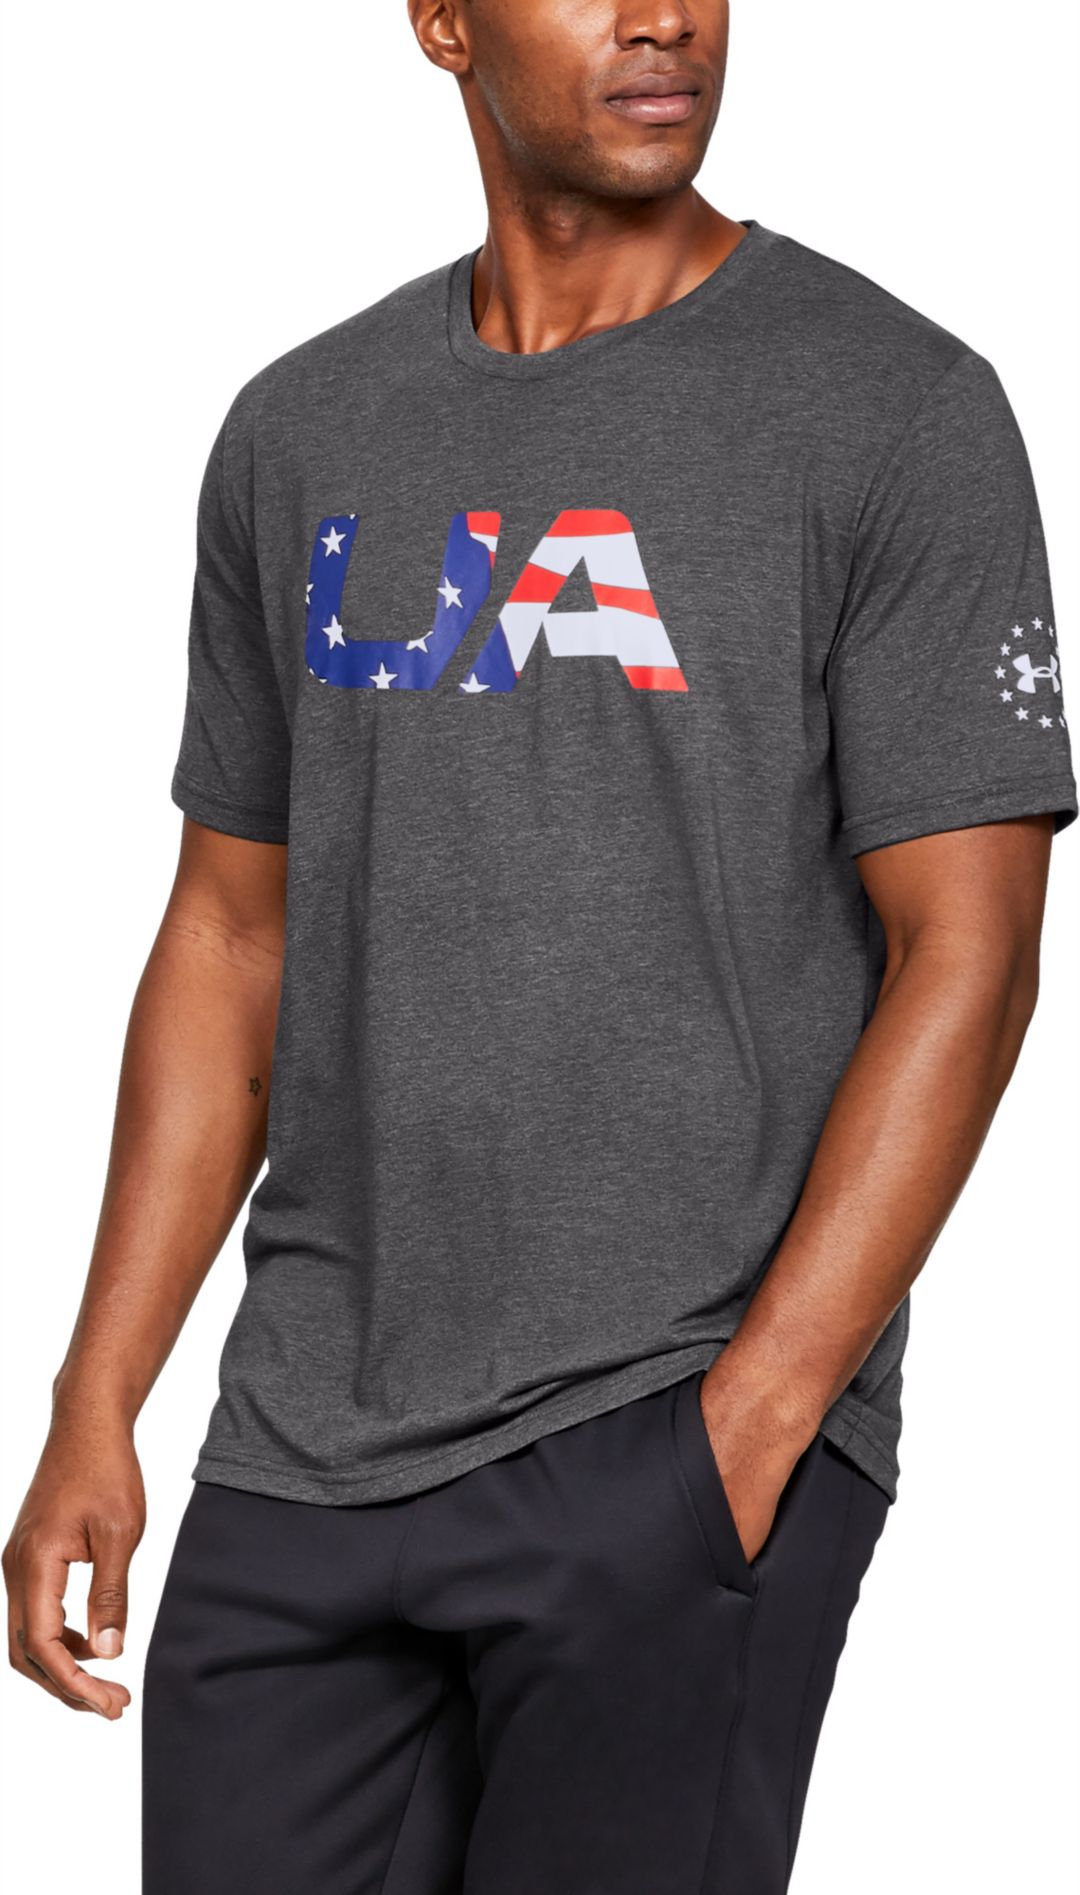 Under Armour Men's Freedom Tactical Graphic T-Shirt